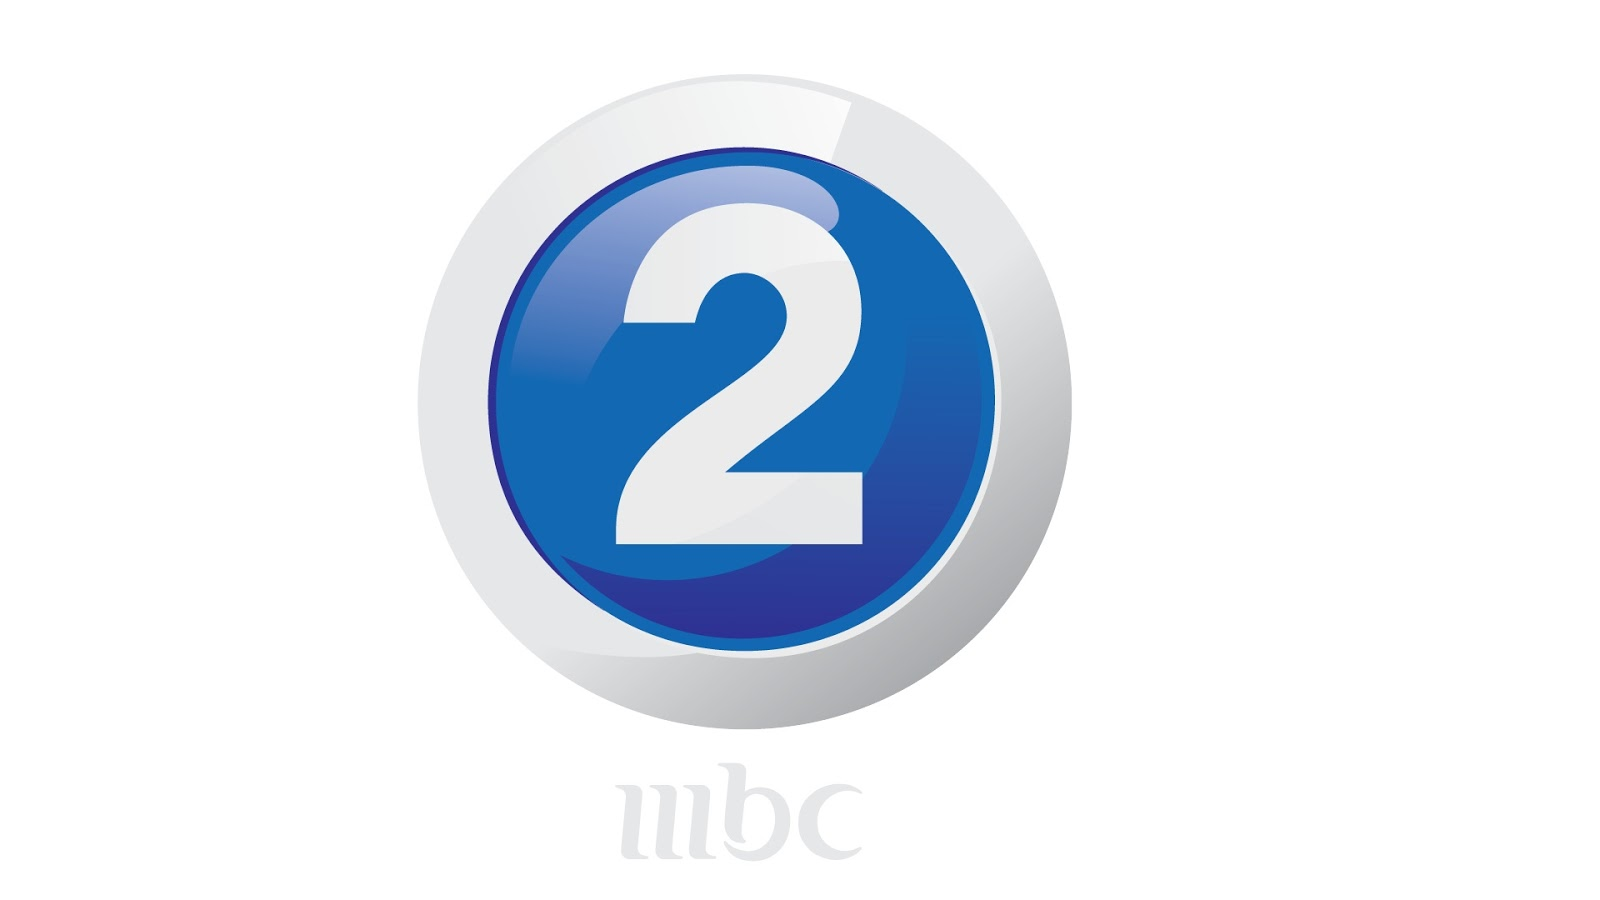 MBC 1/2/3/4/MAX/Action - New Frequencies On Nilesat / Badr